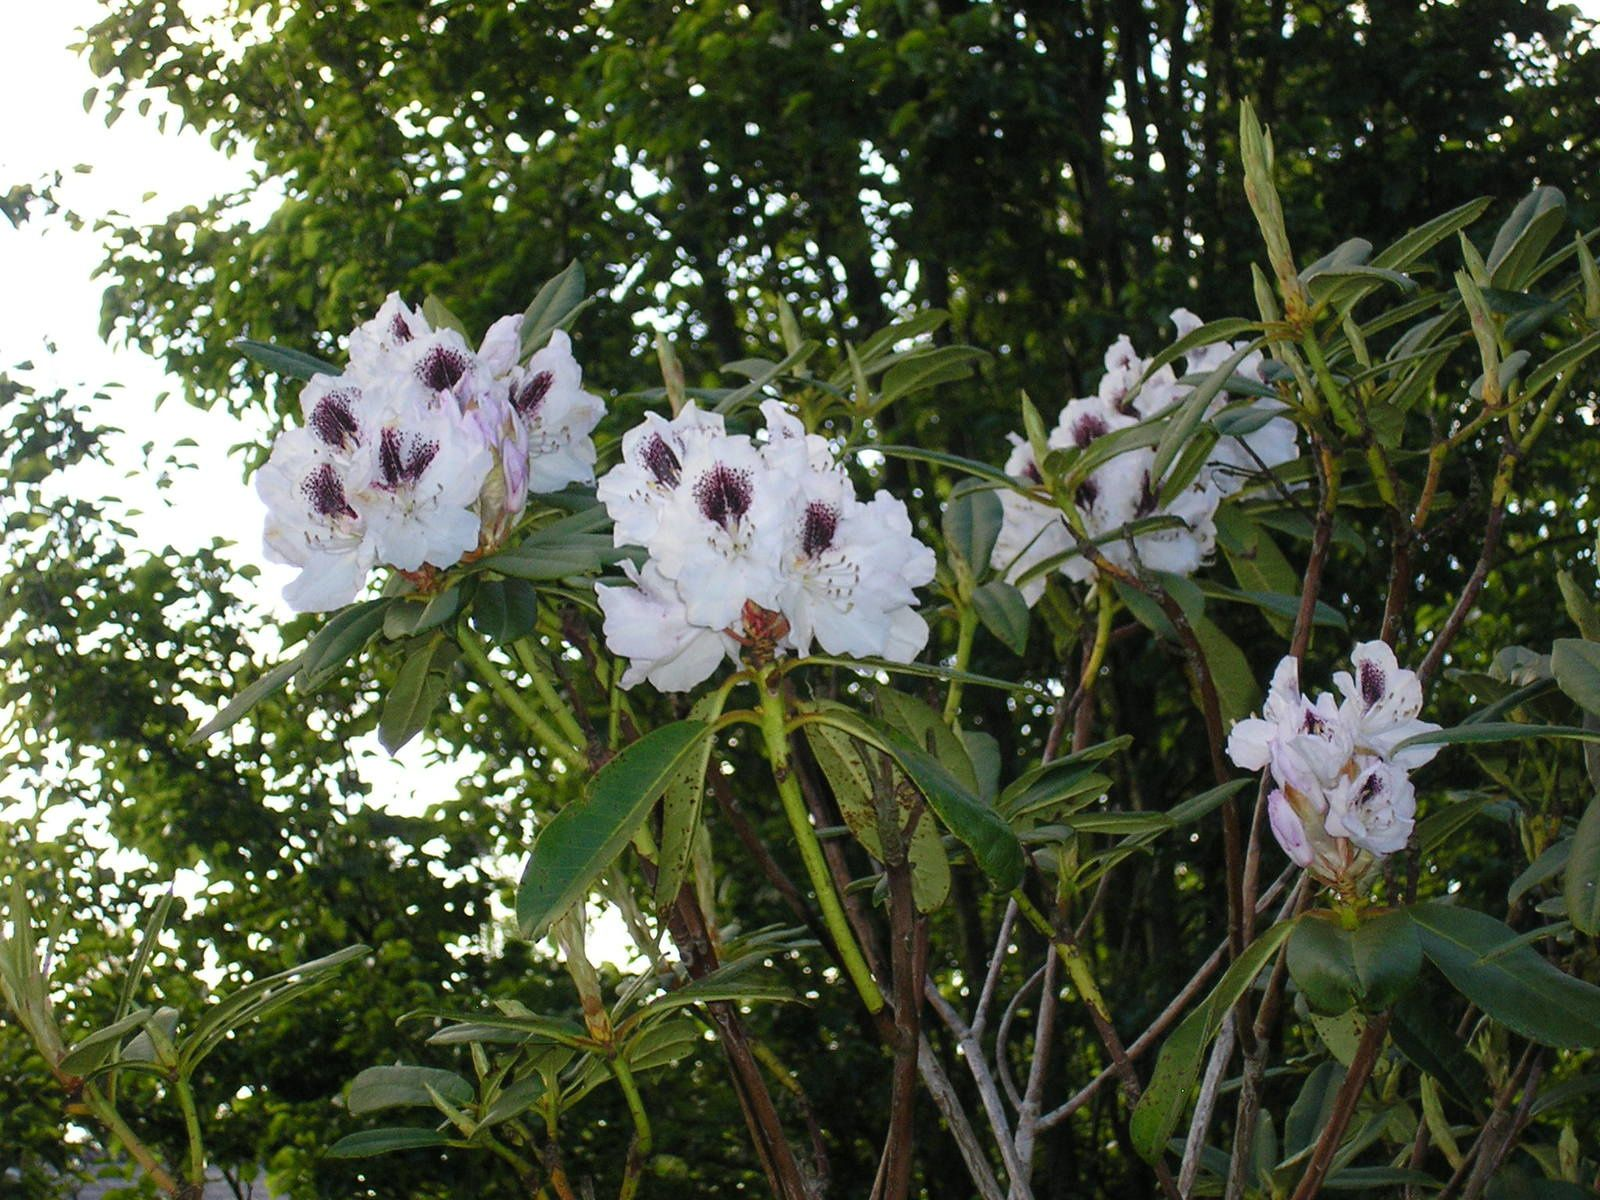 Le rhododendron sapho